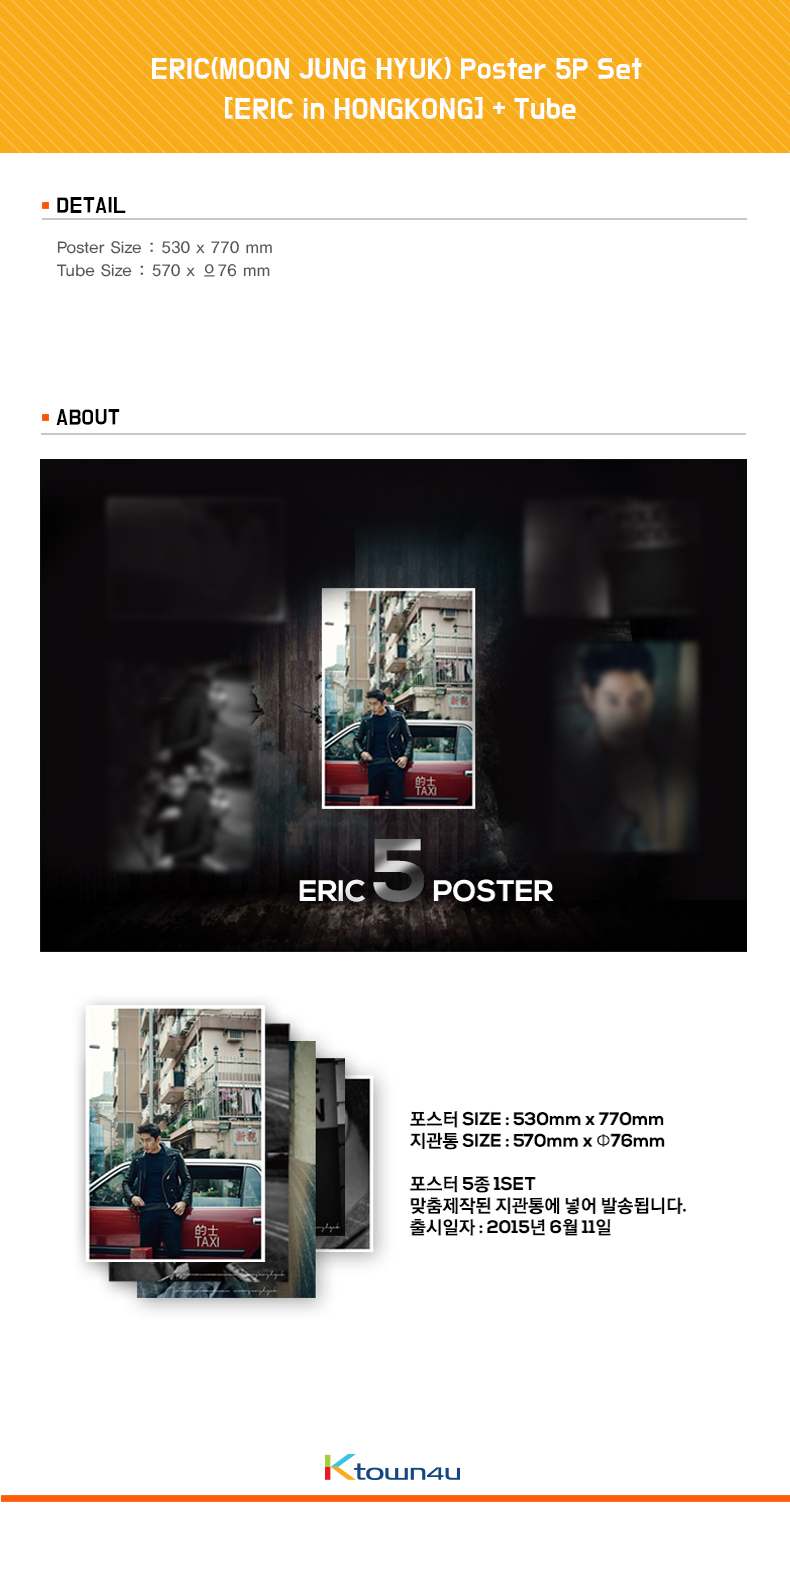 ERIC(文晸赫) 筒装海报 5P Set [ERIC in HONGKONG]